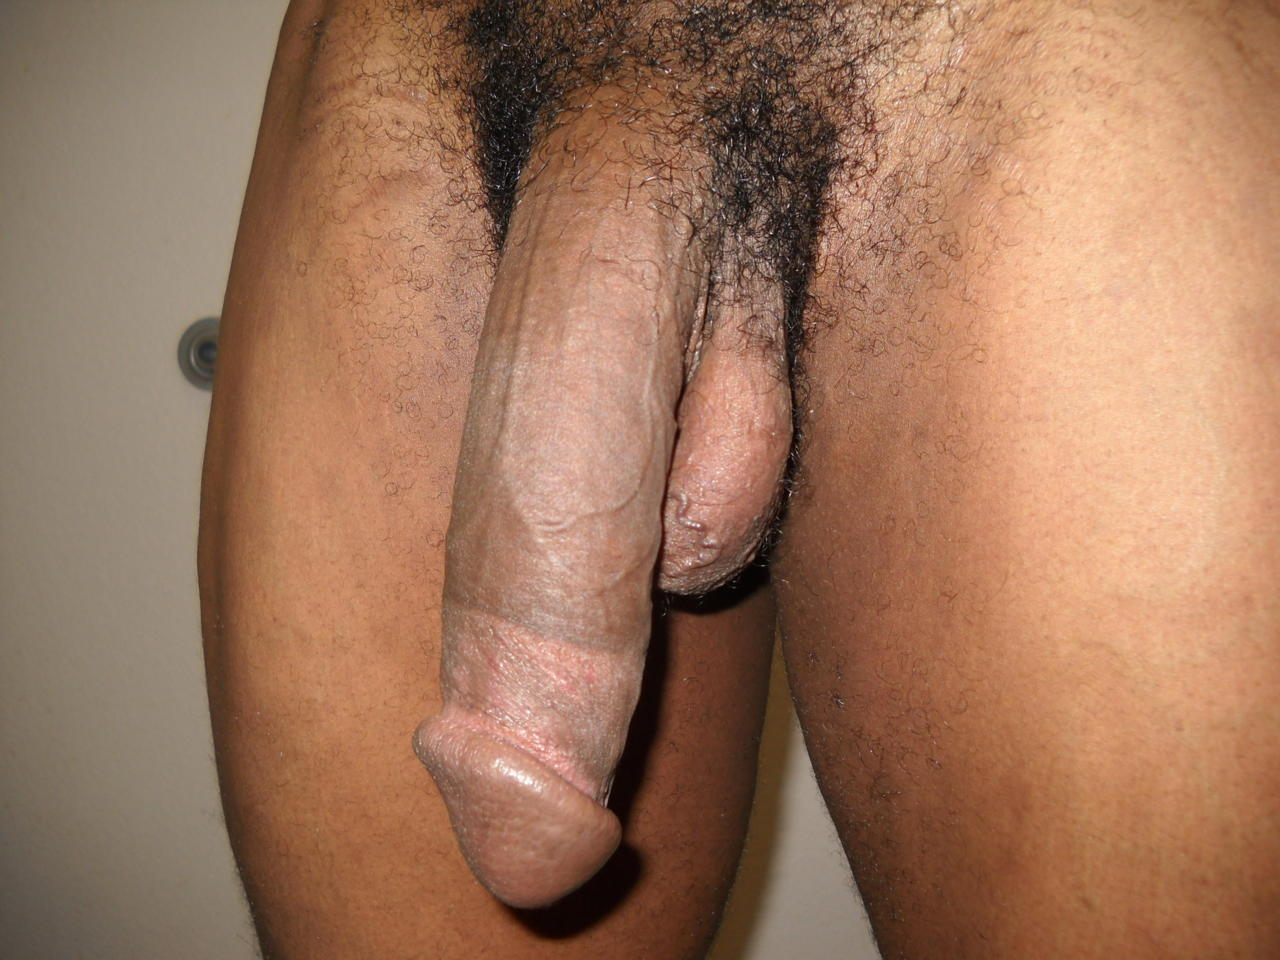 Big balck dicks